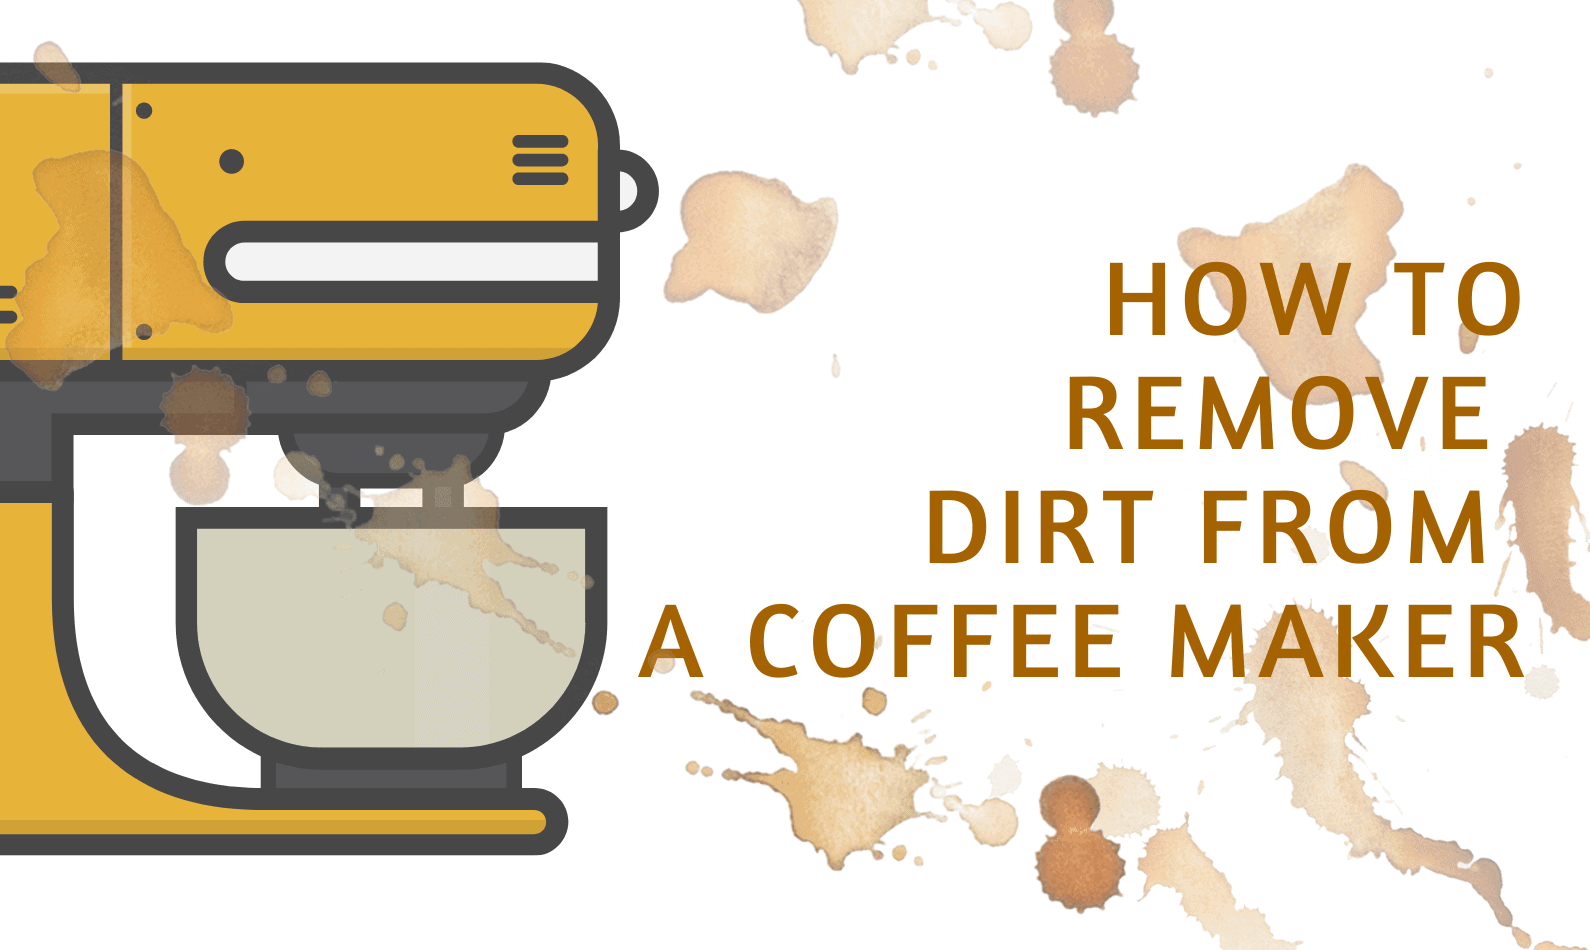 How to Remove Dirt from a Coffee Maker